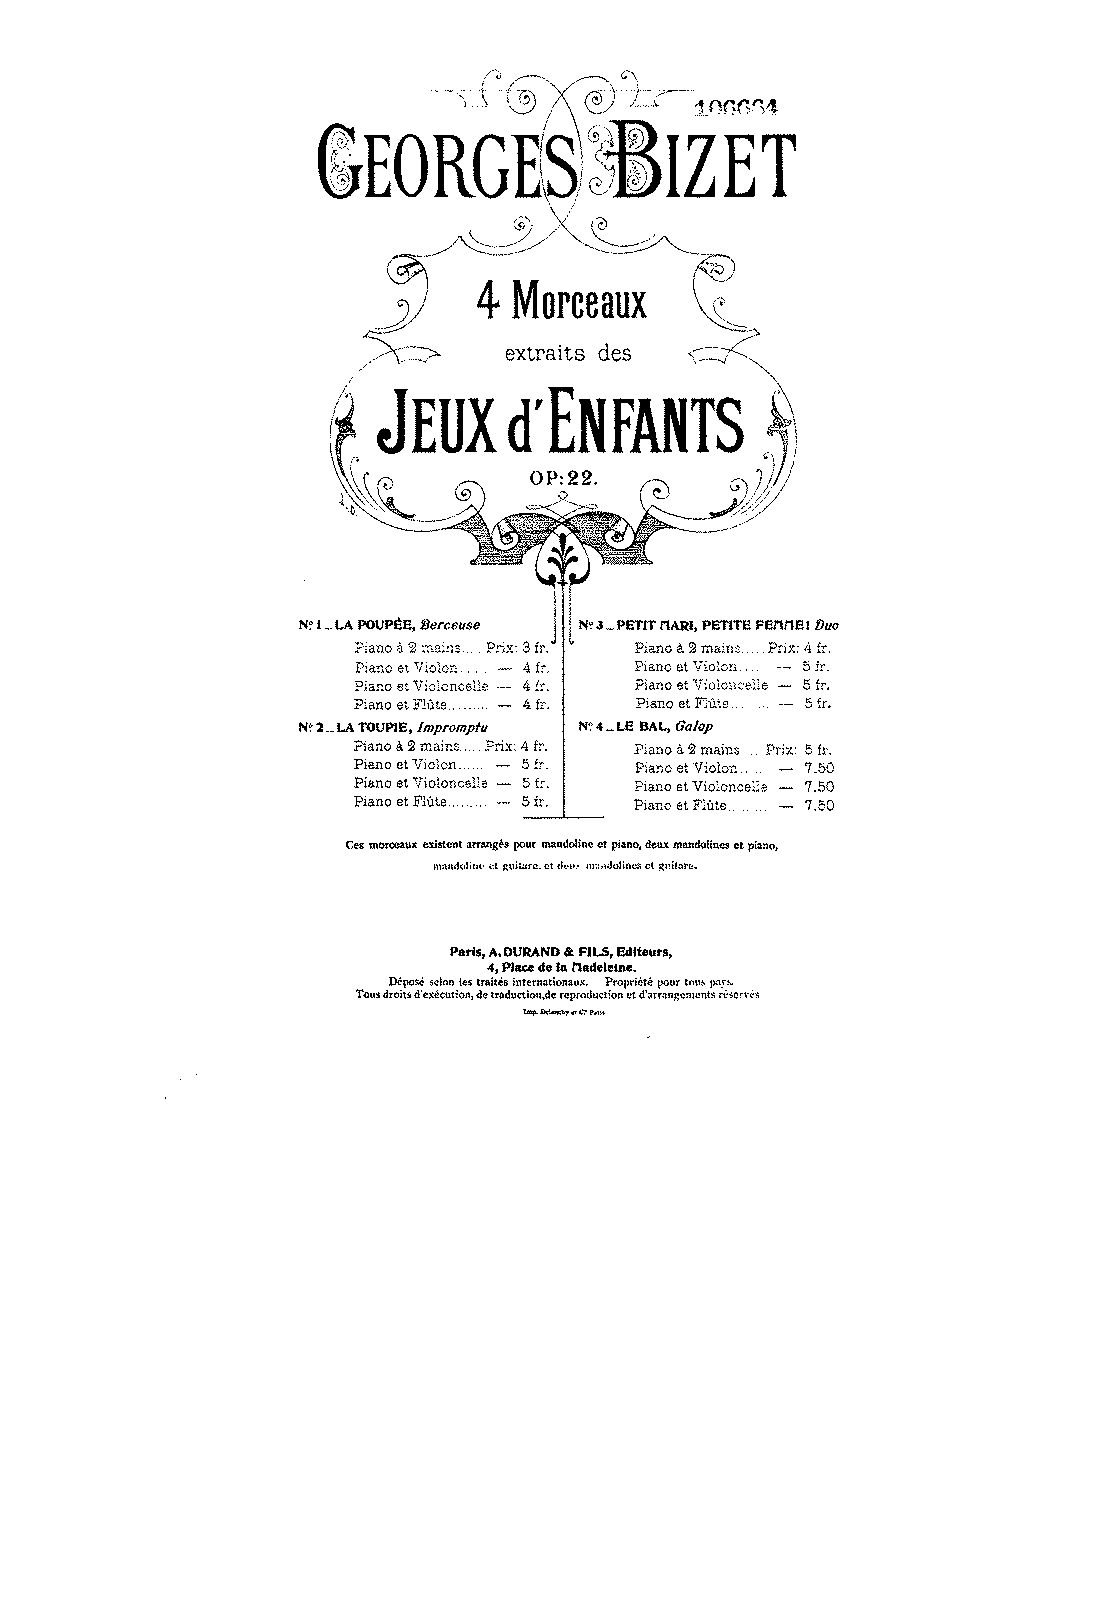 PMLP06475-Bizet - La Toupie Impromptu for Cello and Piano Extrait No2 des Jeux d'enfants Op22 score.pdf